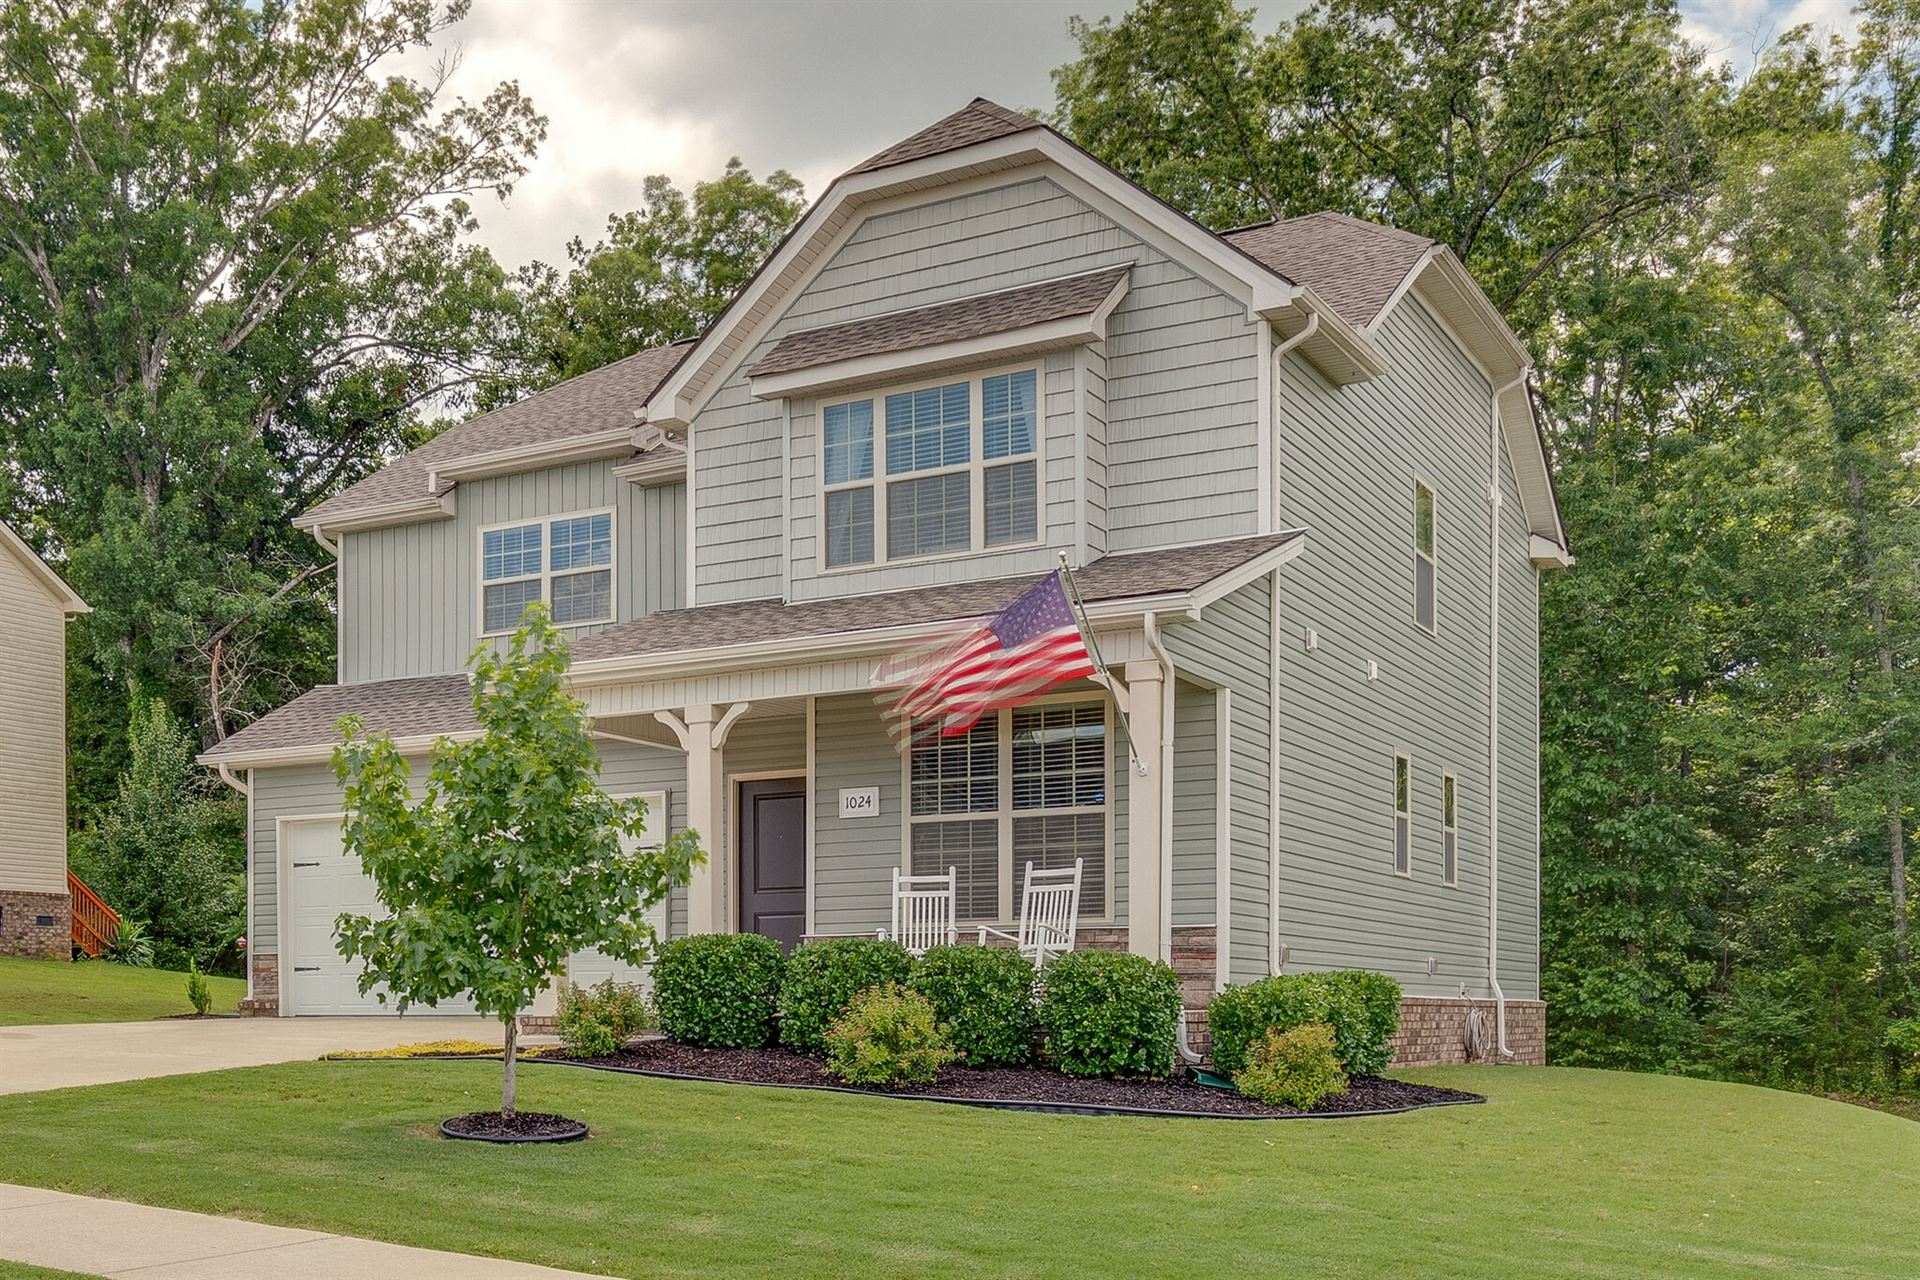 1024 Timbervalley Way, Spring Hill, TN 37174 - MLS#: 2169677